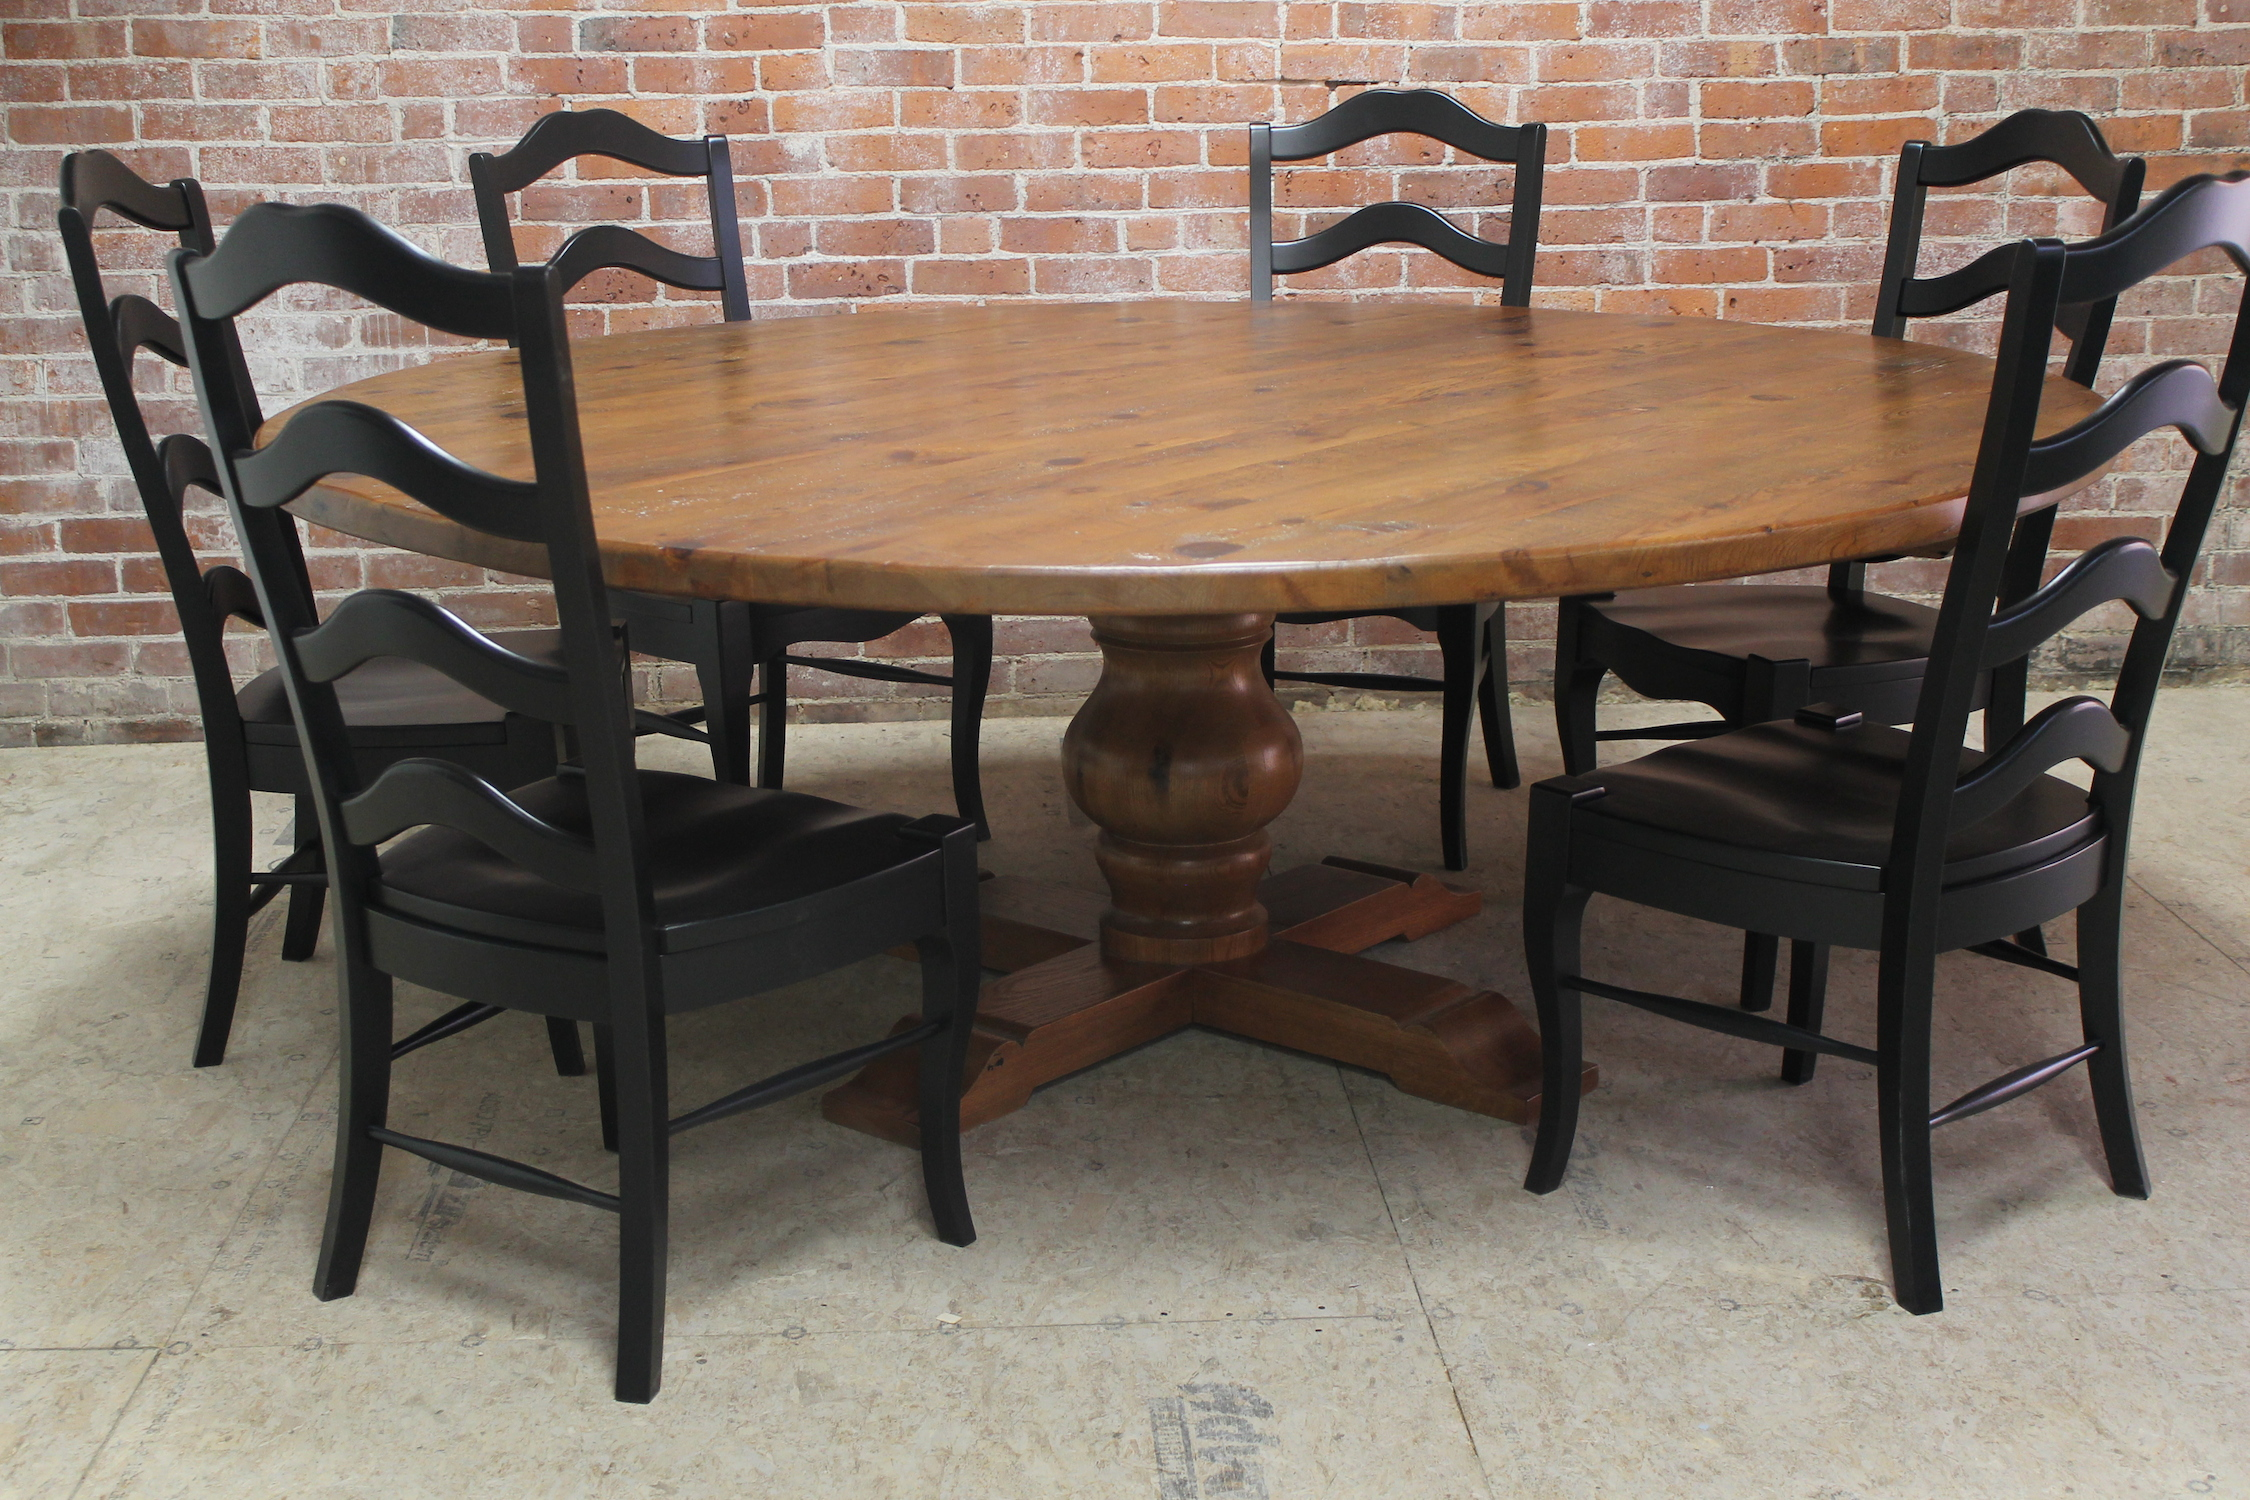 Simple Natural Polished Wooden Round Dining Room Table For 6 Set Black  Polished Cahirs Natural Brick